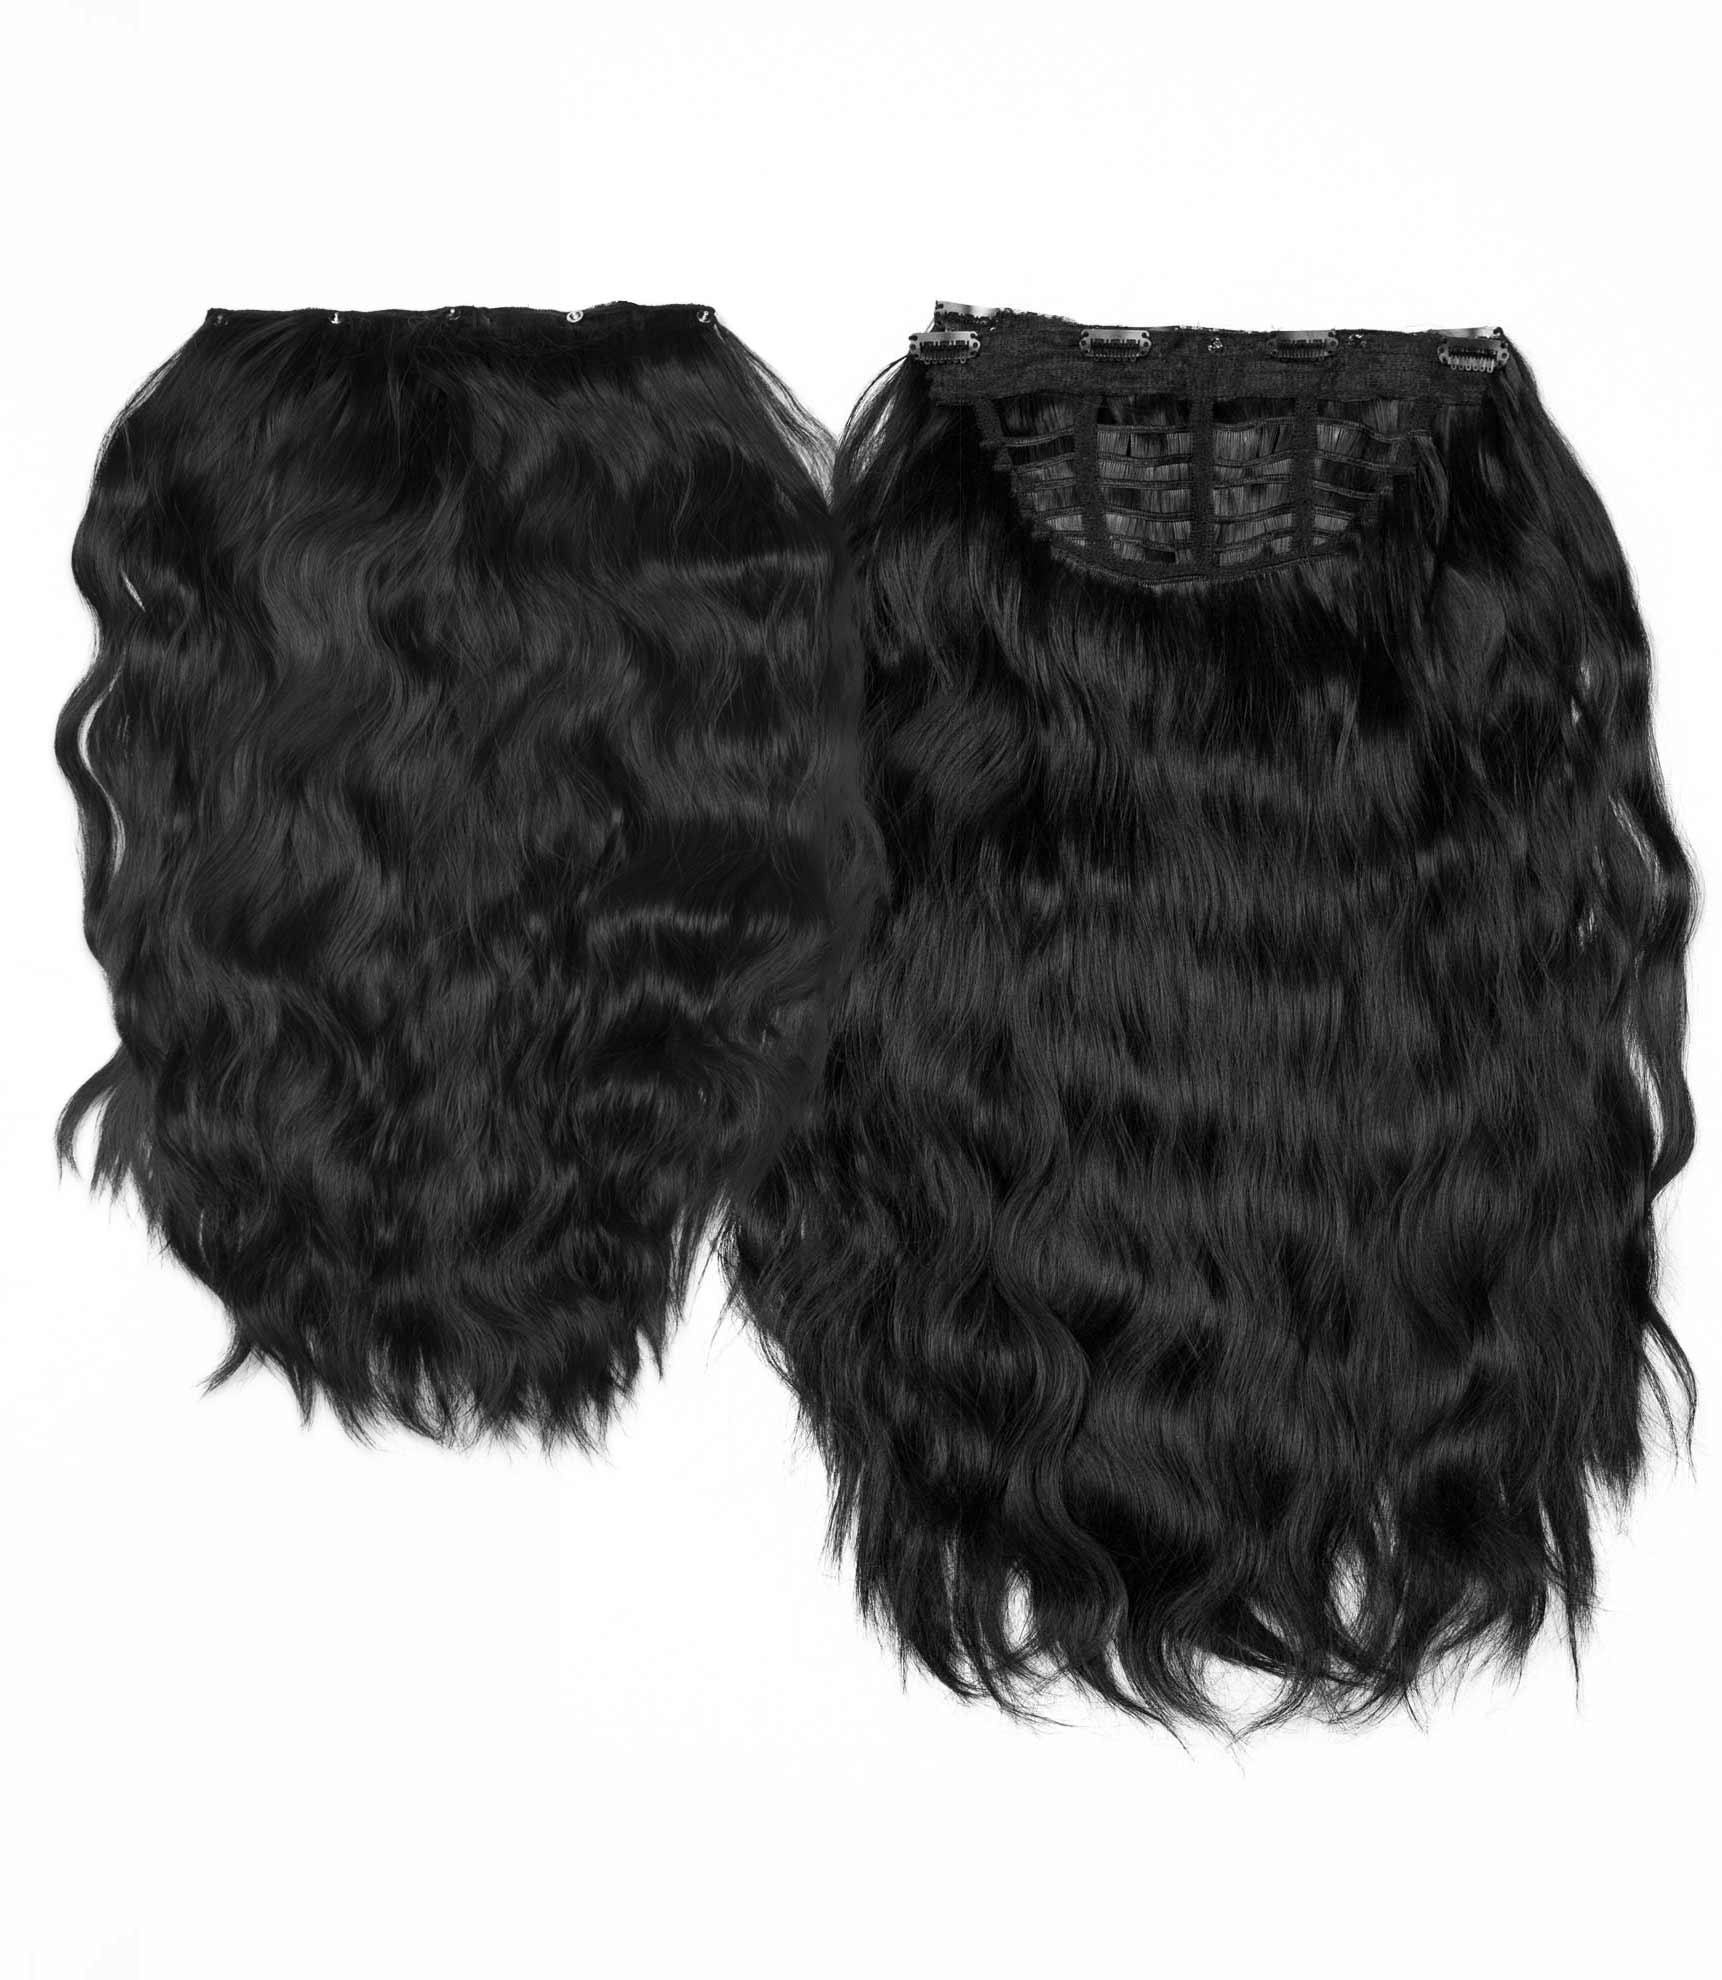 "Charlotte's Miracle Makeover HD Fibre Hair Extensions - 14"" / 22"" - Black (1319142096976)"